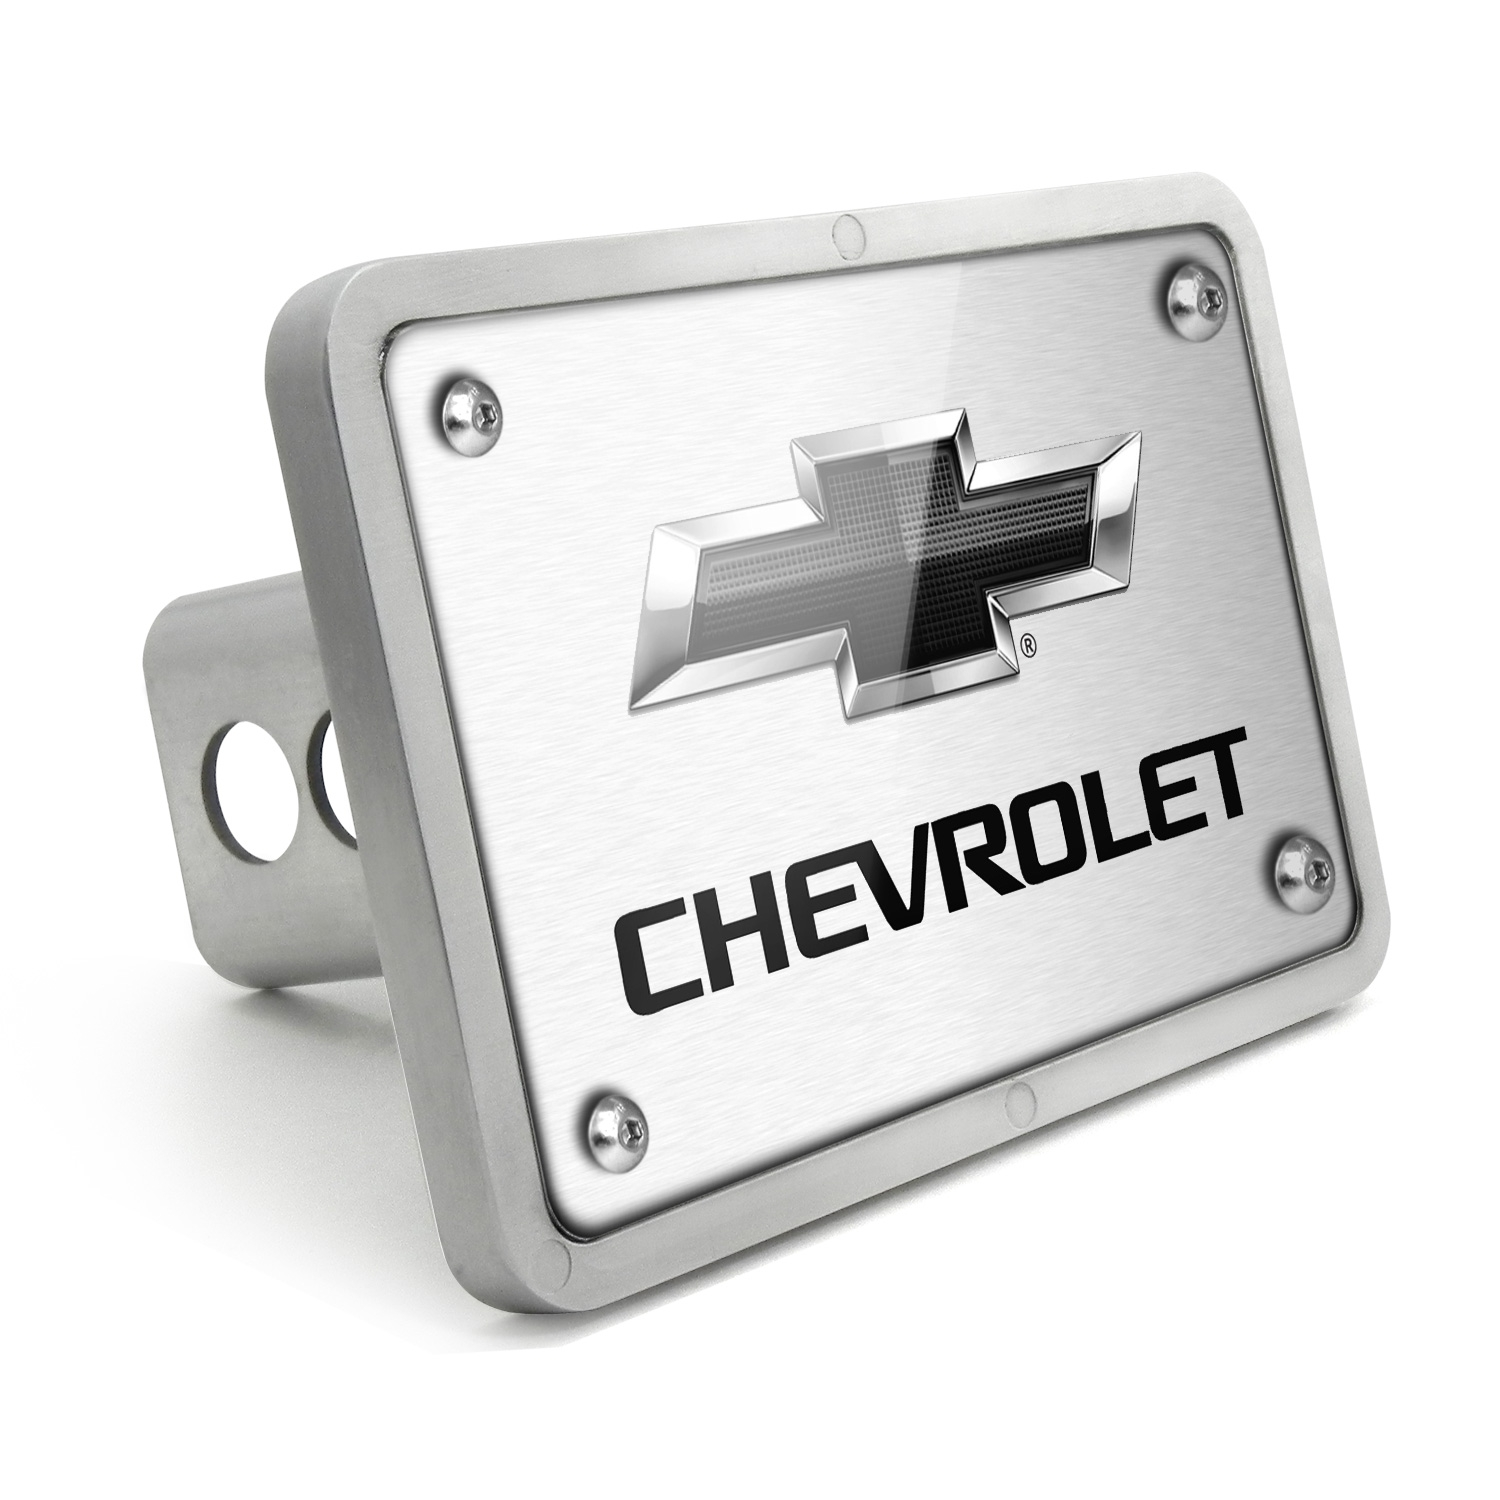 Chevrolet Black Logo 2011 UV Graphic Brushed Silver Billet Aluminum 2 inch Tow Hitch Cover